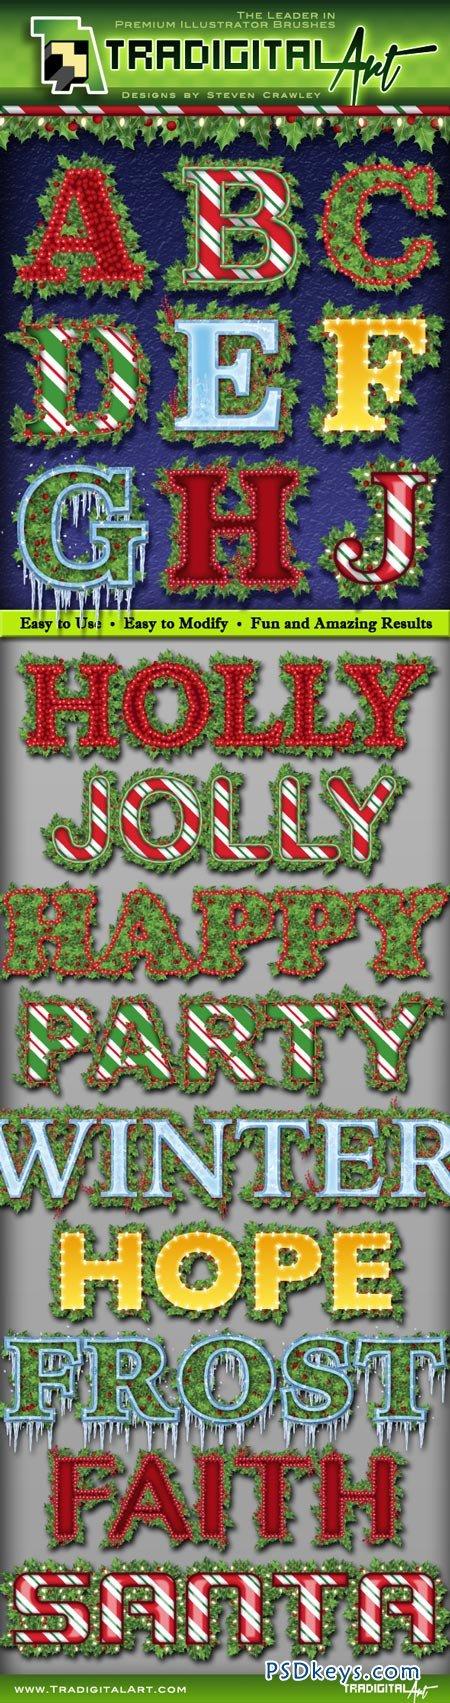 Holly Jolly Graphic Styles 9111190